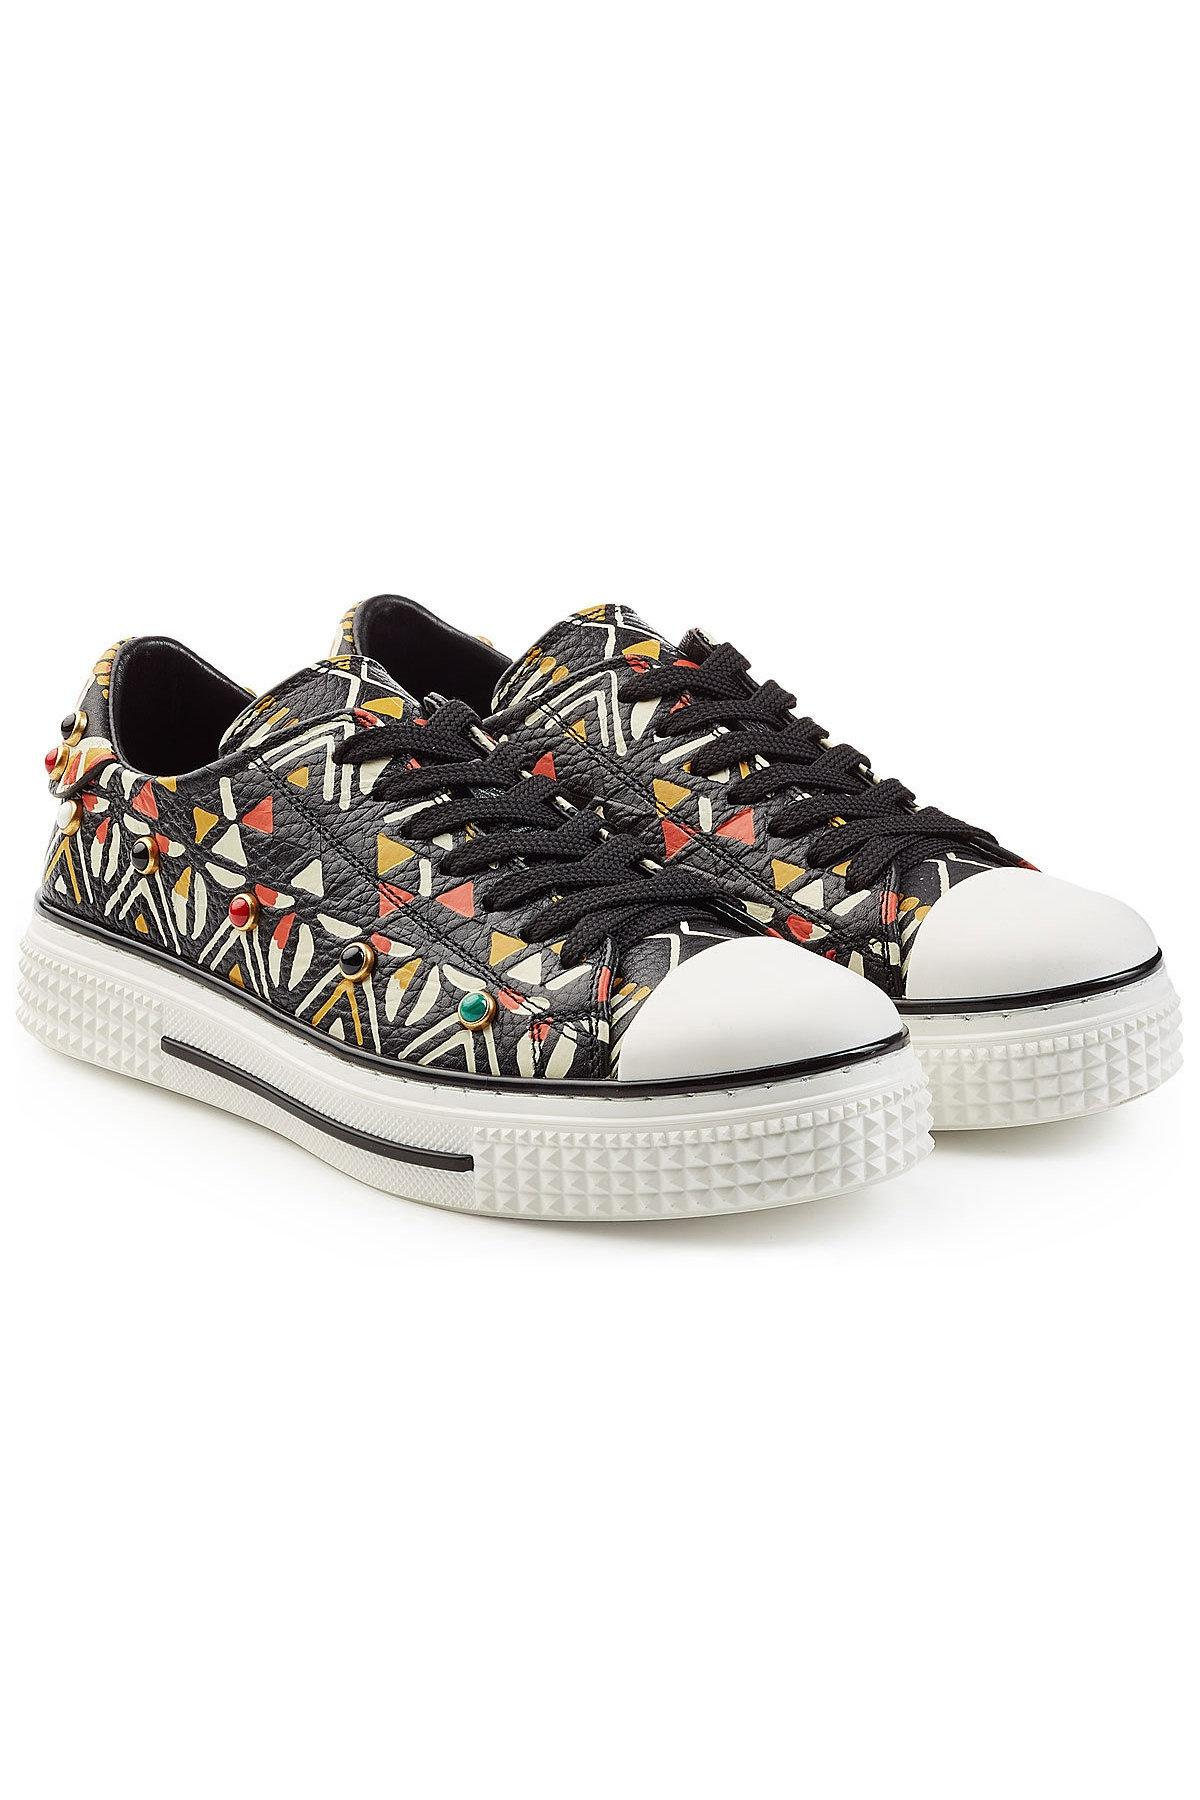 Valentino Multicolor Stud Embellished Printed Leahter Rolling Rocksud Sneakers Size US 7 Regular (M, B)